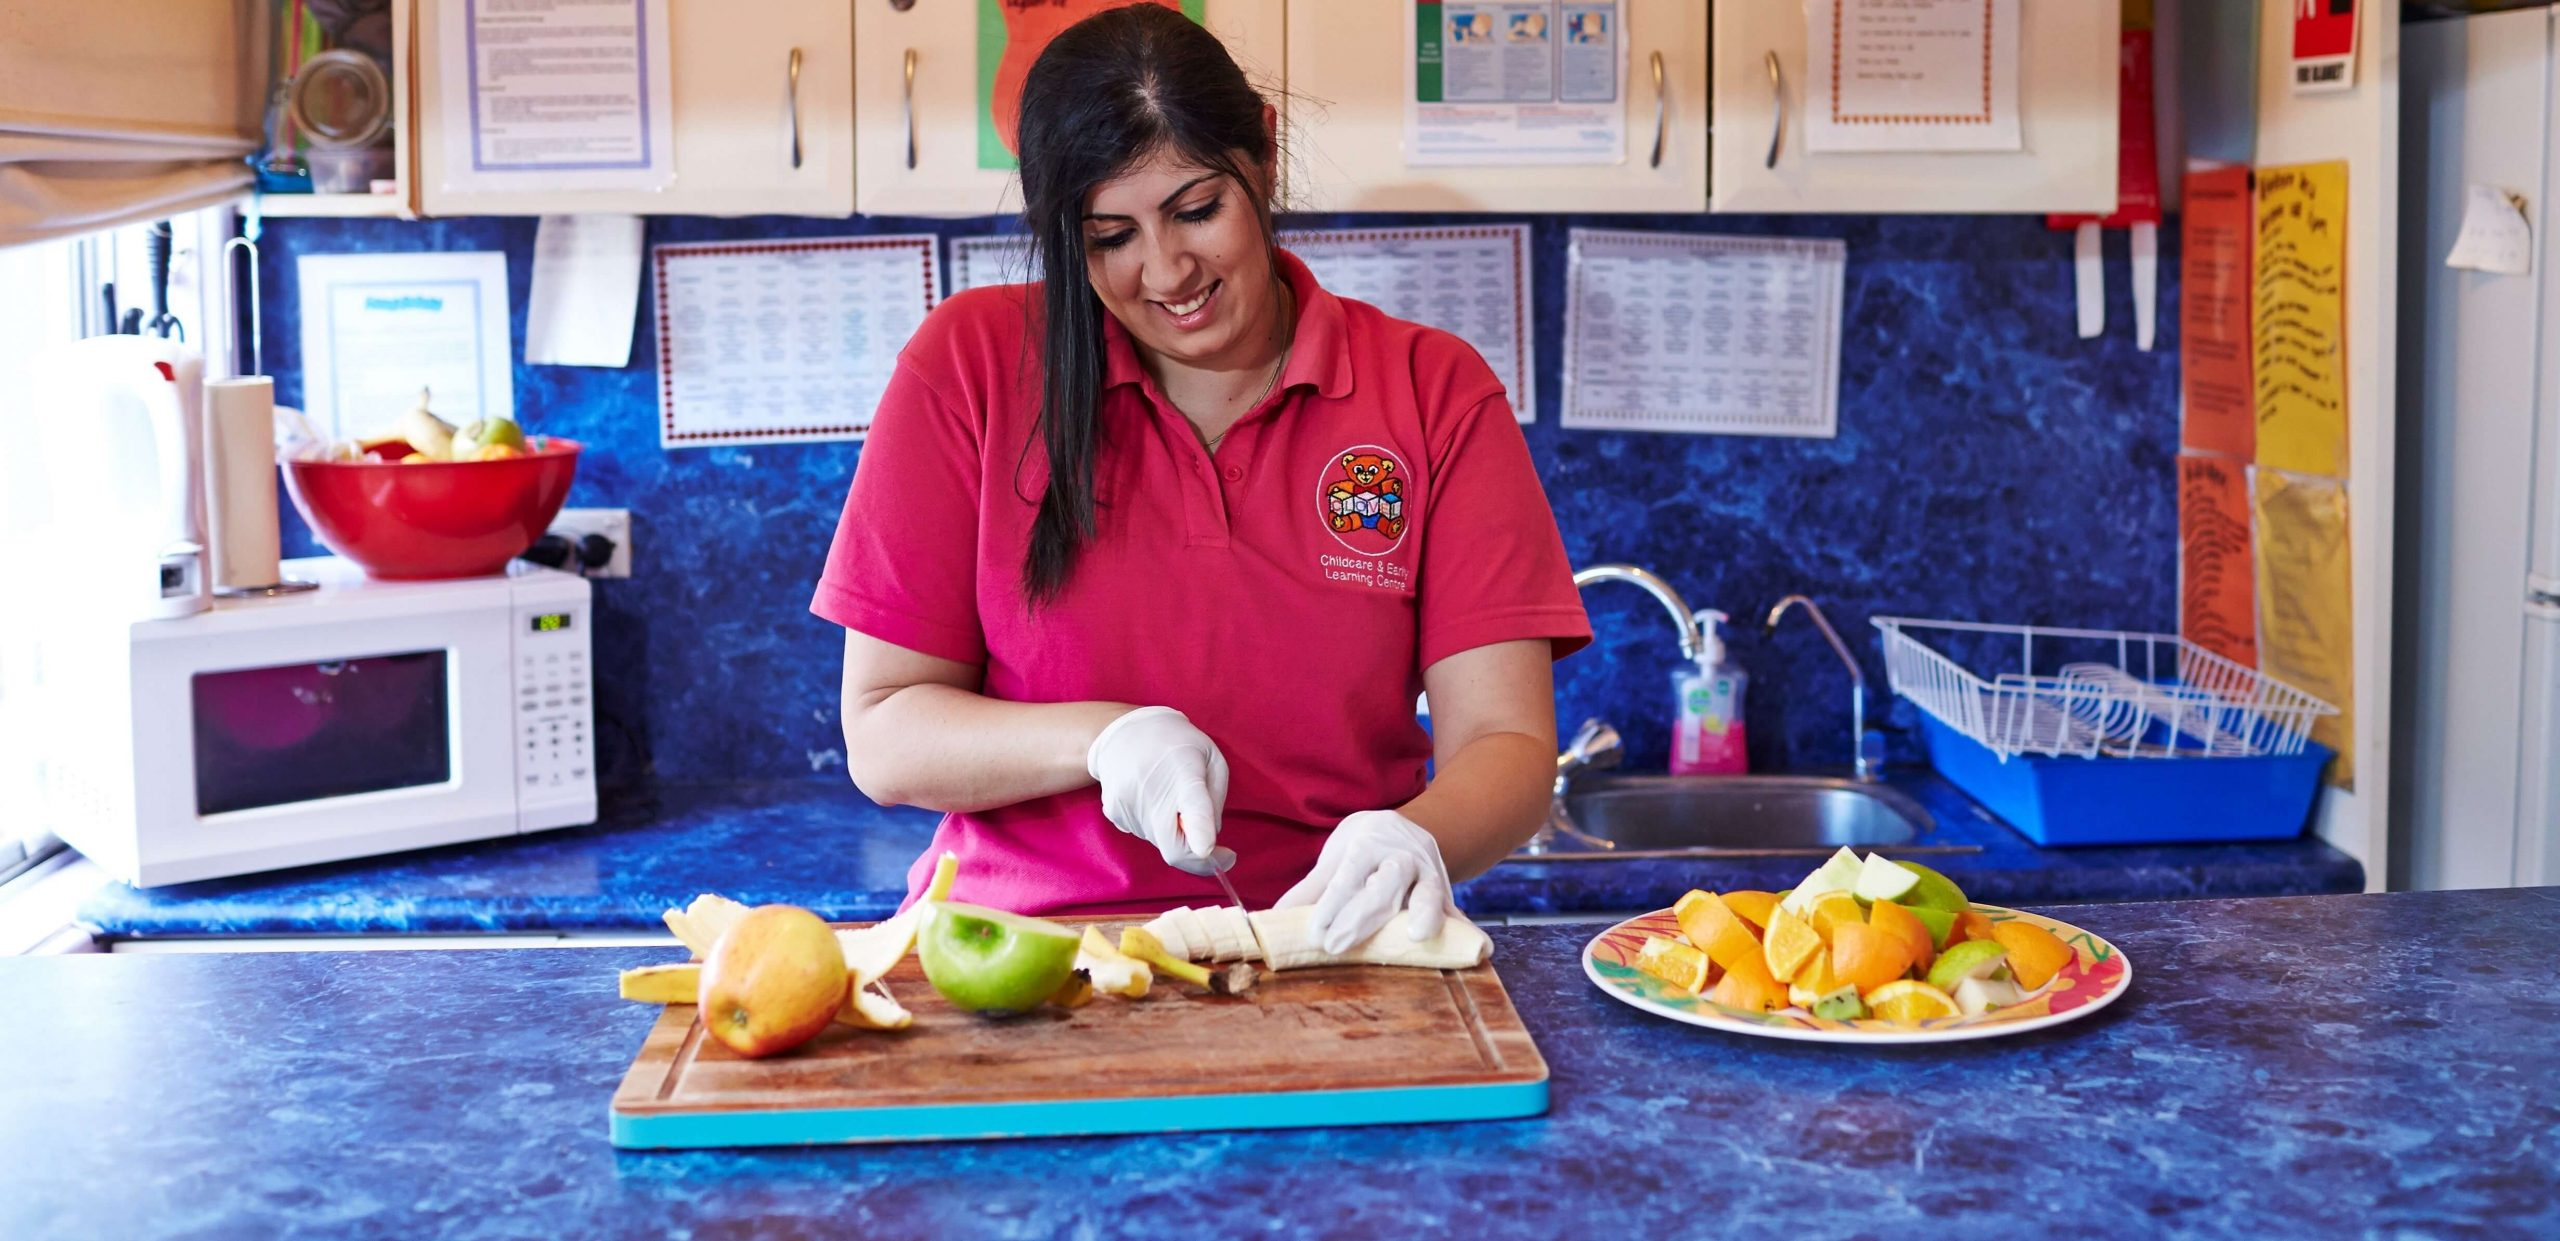 Early childhood educator cutting fruit on a chopping board